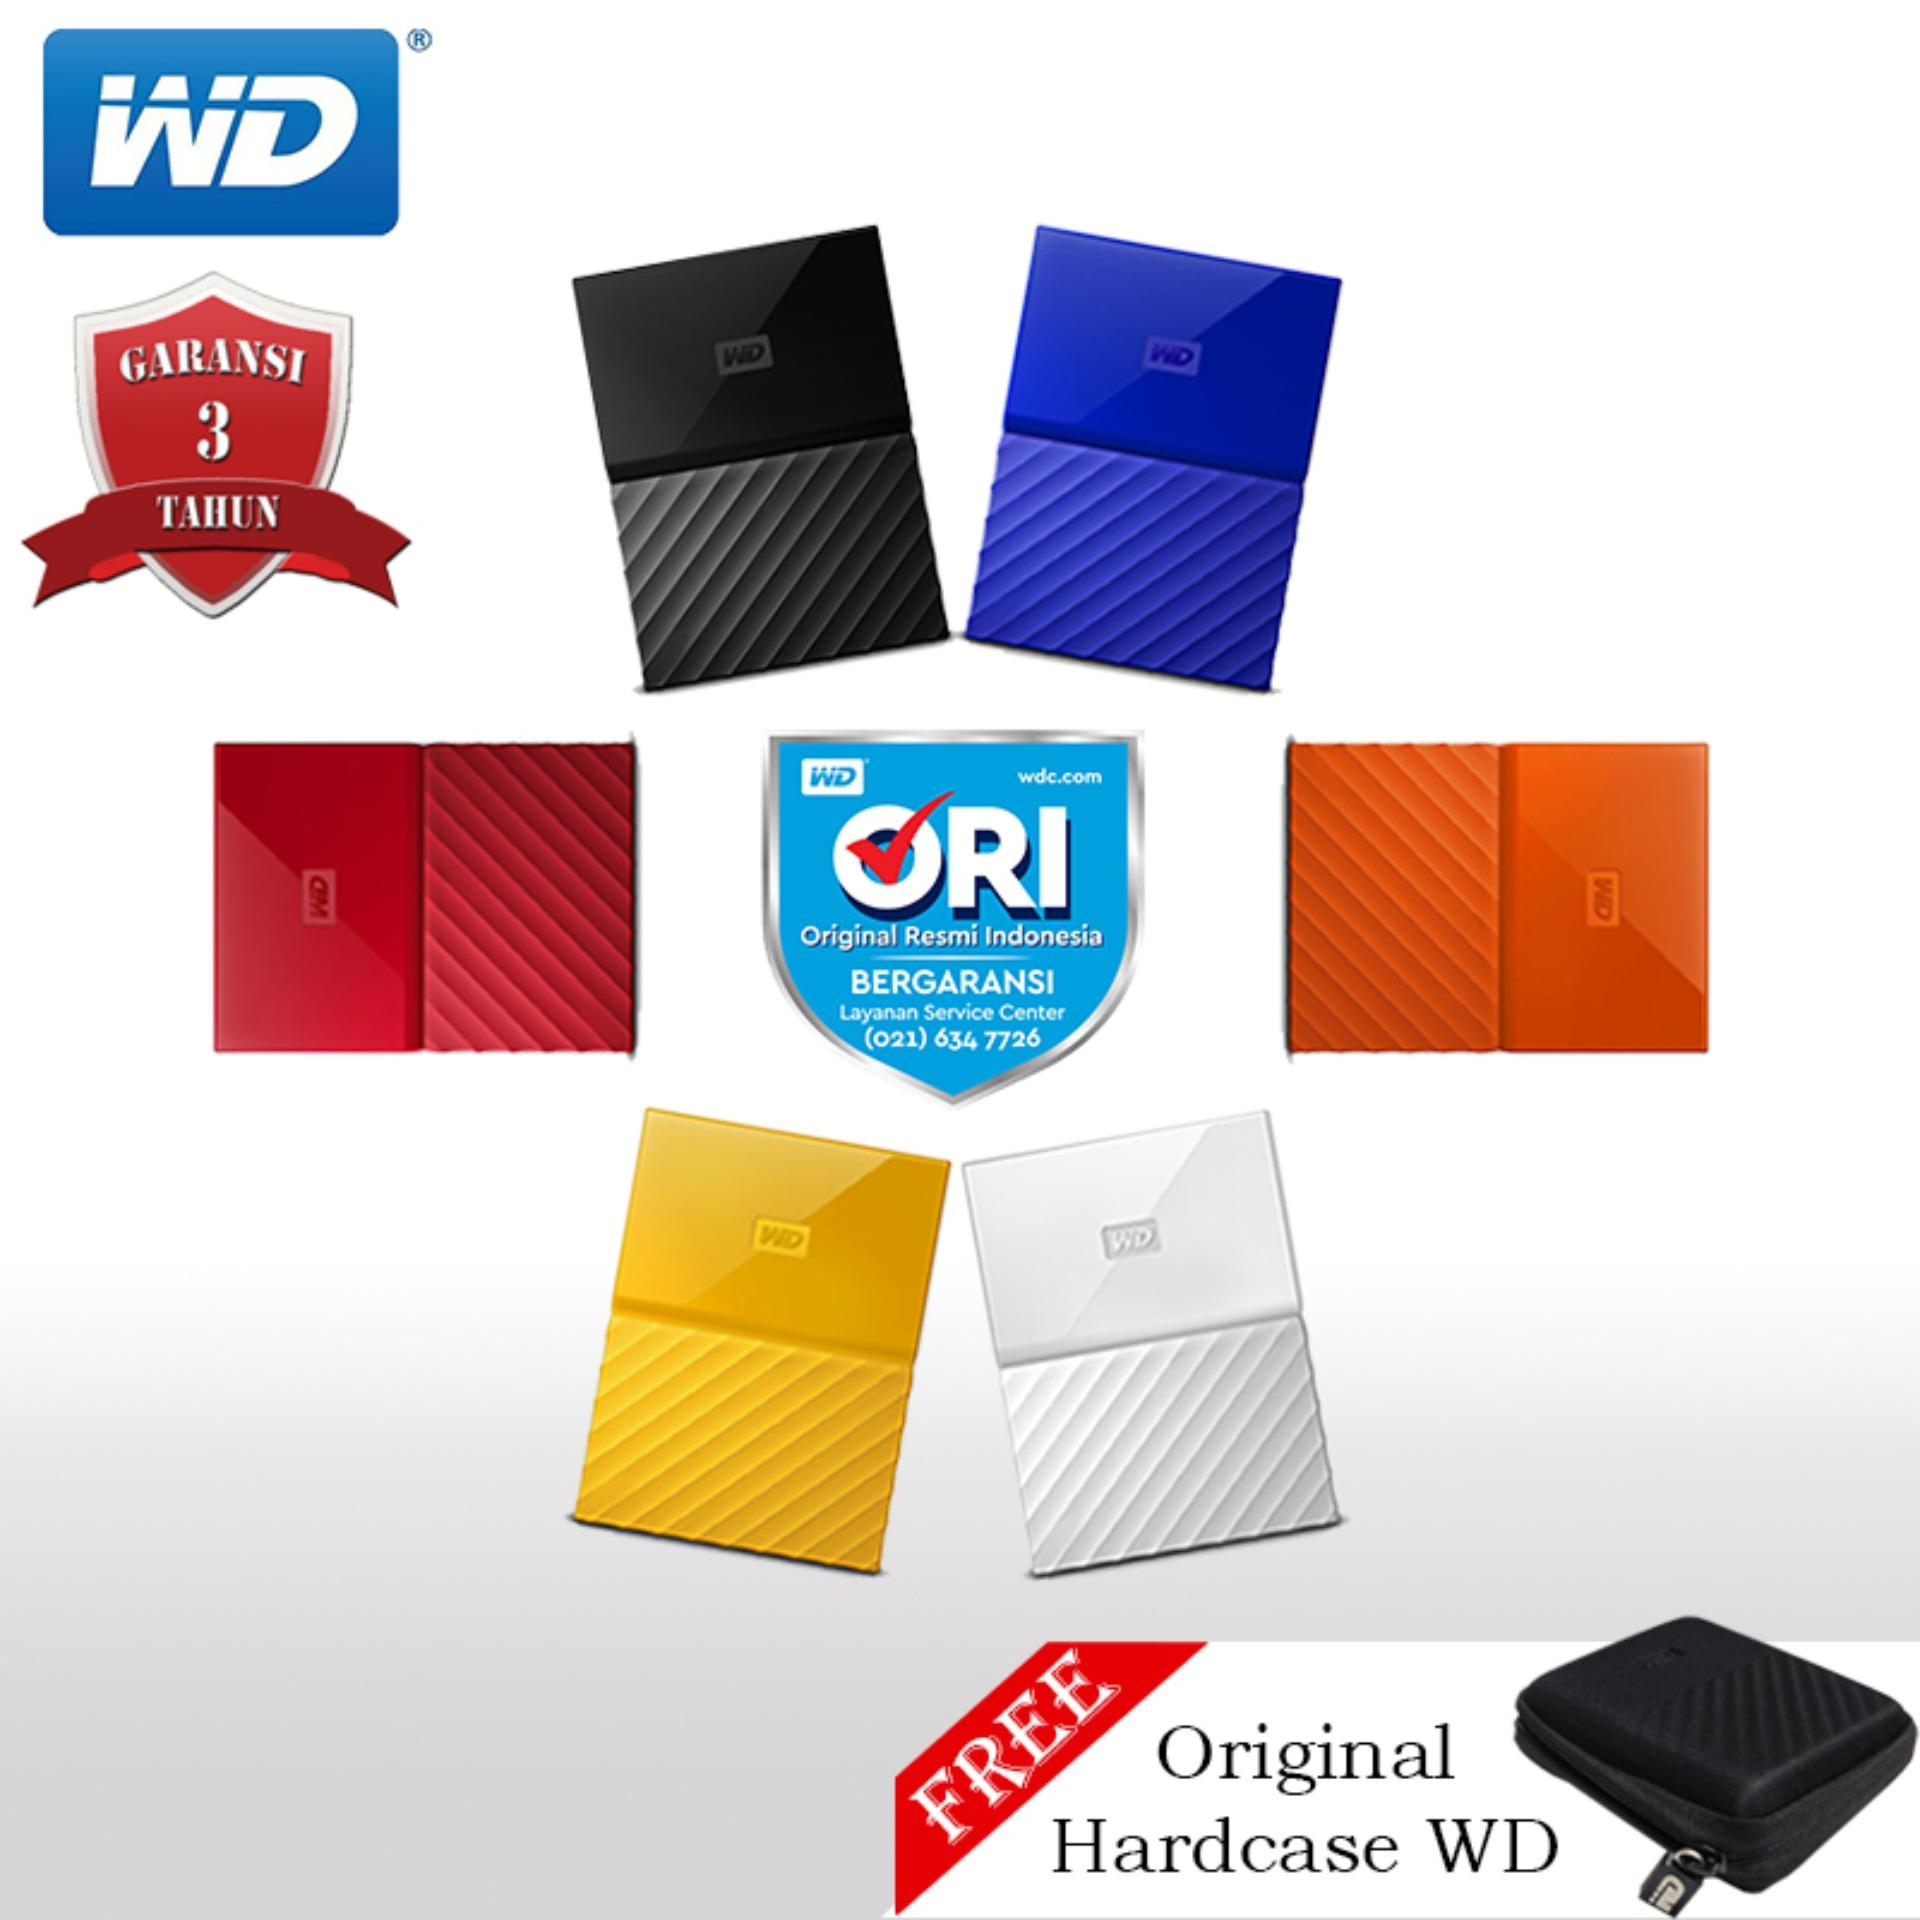 Wd My Passport Hardisk Eksternal 2tb 2.5 Usb3.0 + Hardcase Wd By Wd Official Store